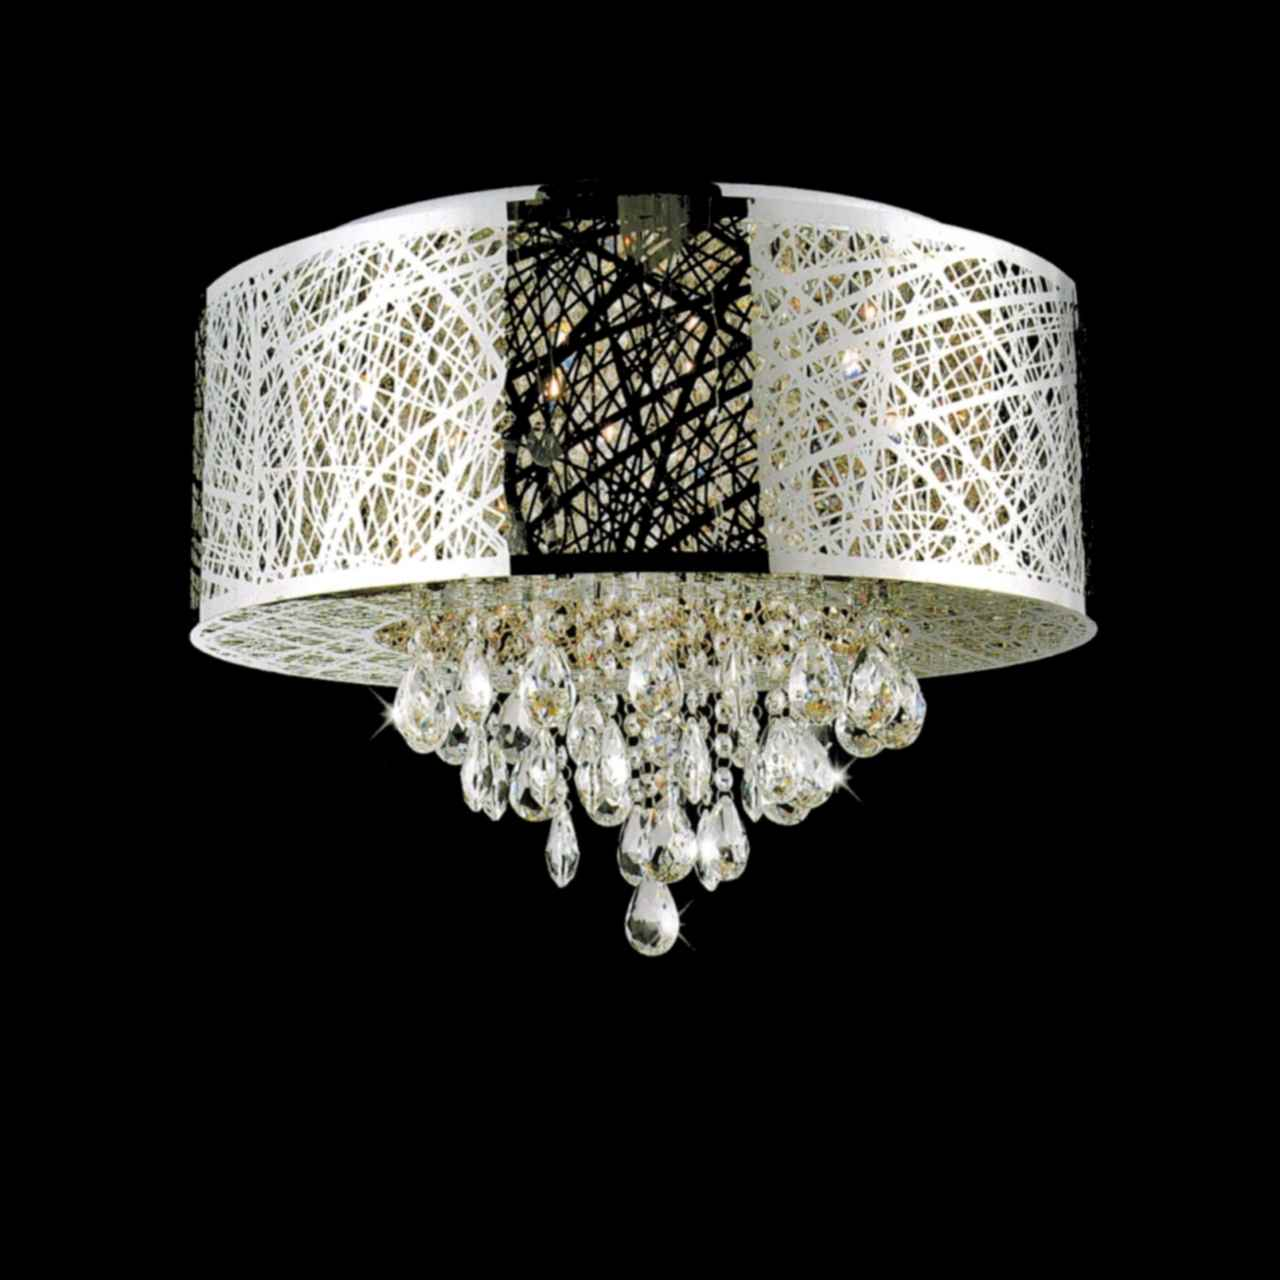 Brizzo lighting stores 22 web modern laser cut drum shade crystal picture of 22 web modern laser cut drum shade crystal round flush mount chandelier stainless aloadofball Images